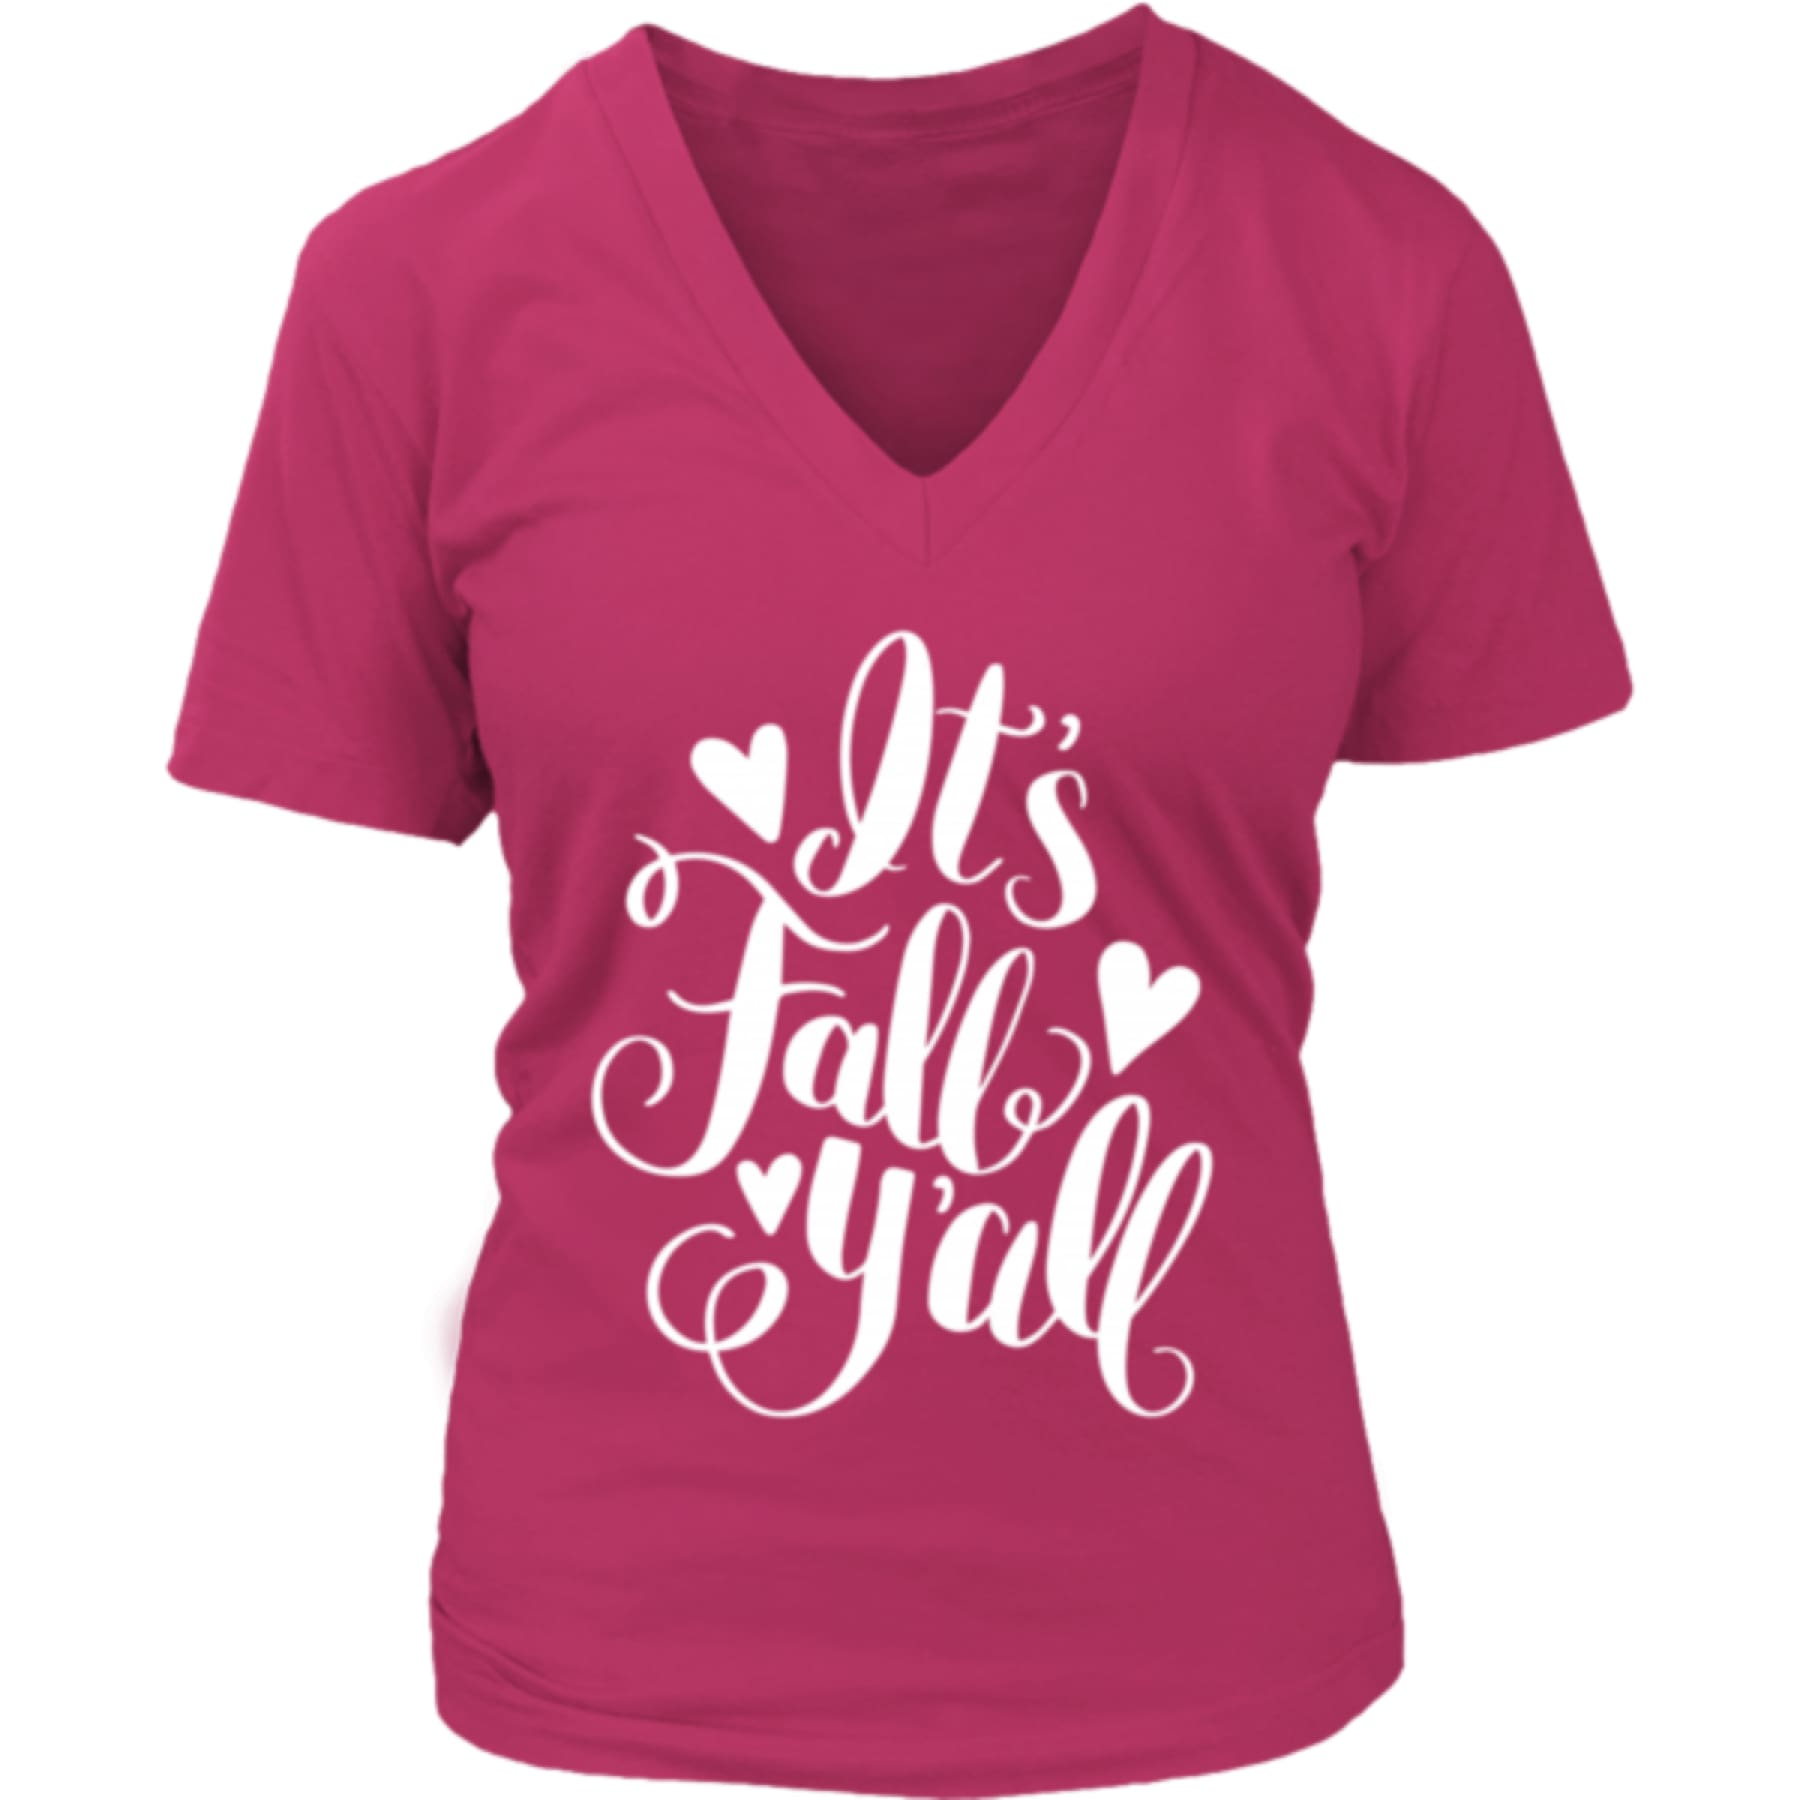 Fall Ya'll V neck Tee,Graphic Tee - Dirt Road Divas Boutique